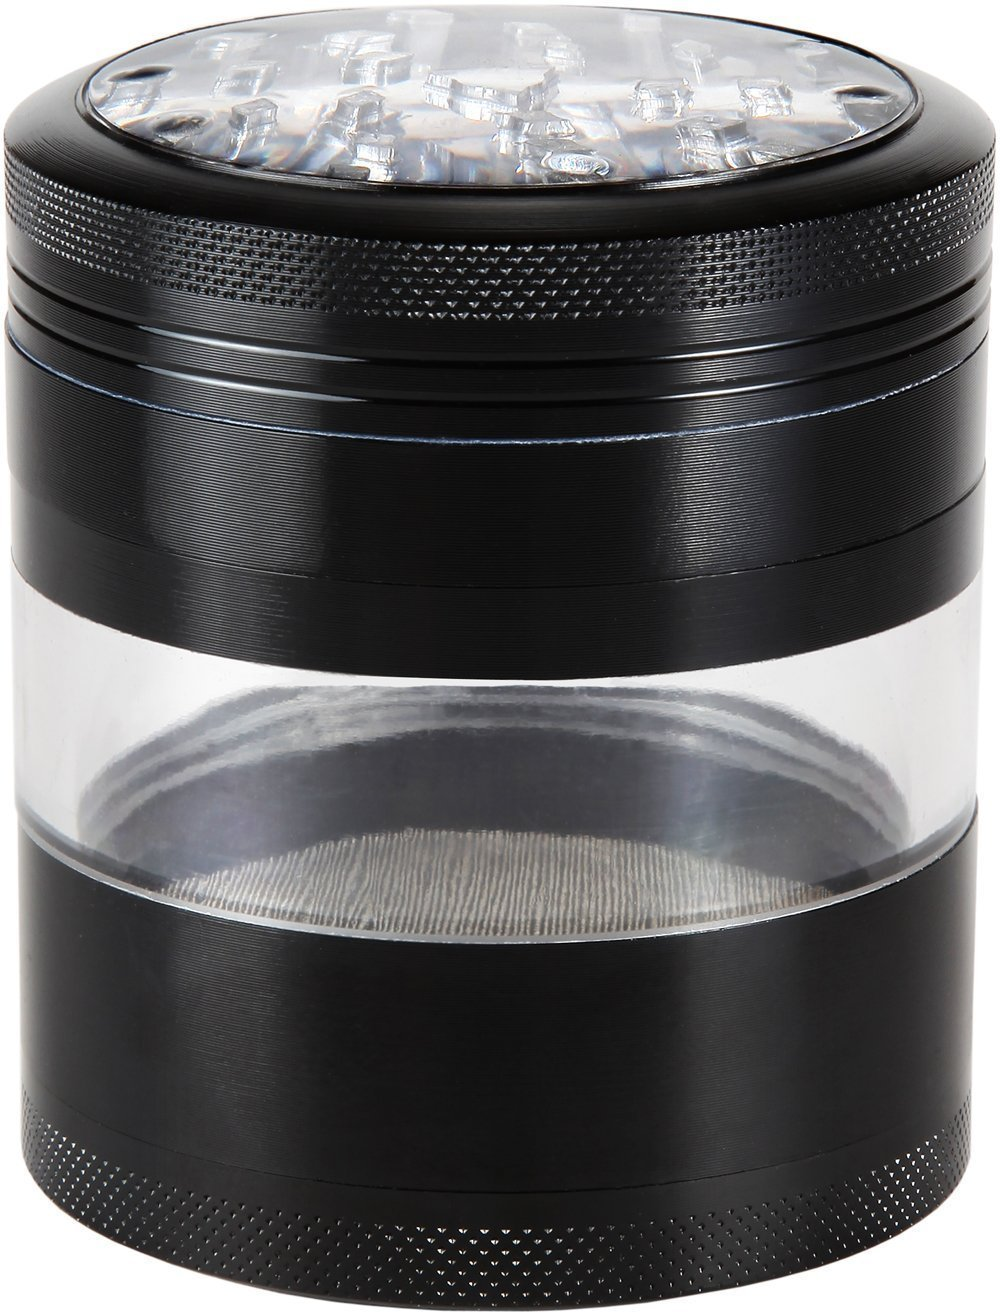 Zip Grinders Large Herb Grinder - Four Piece with Pollen Catcher - 3.25 Inches Tall - Premium Grade Aluminum (2.5